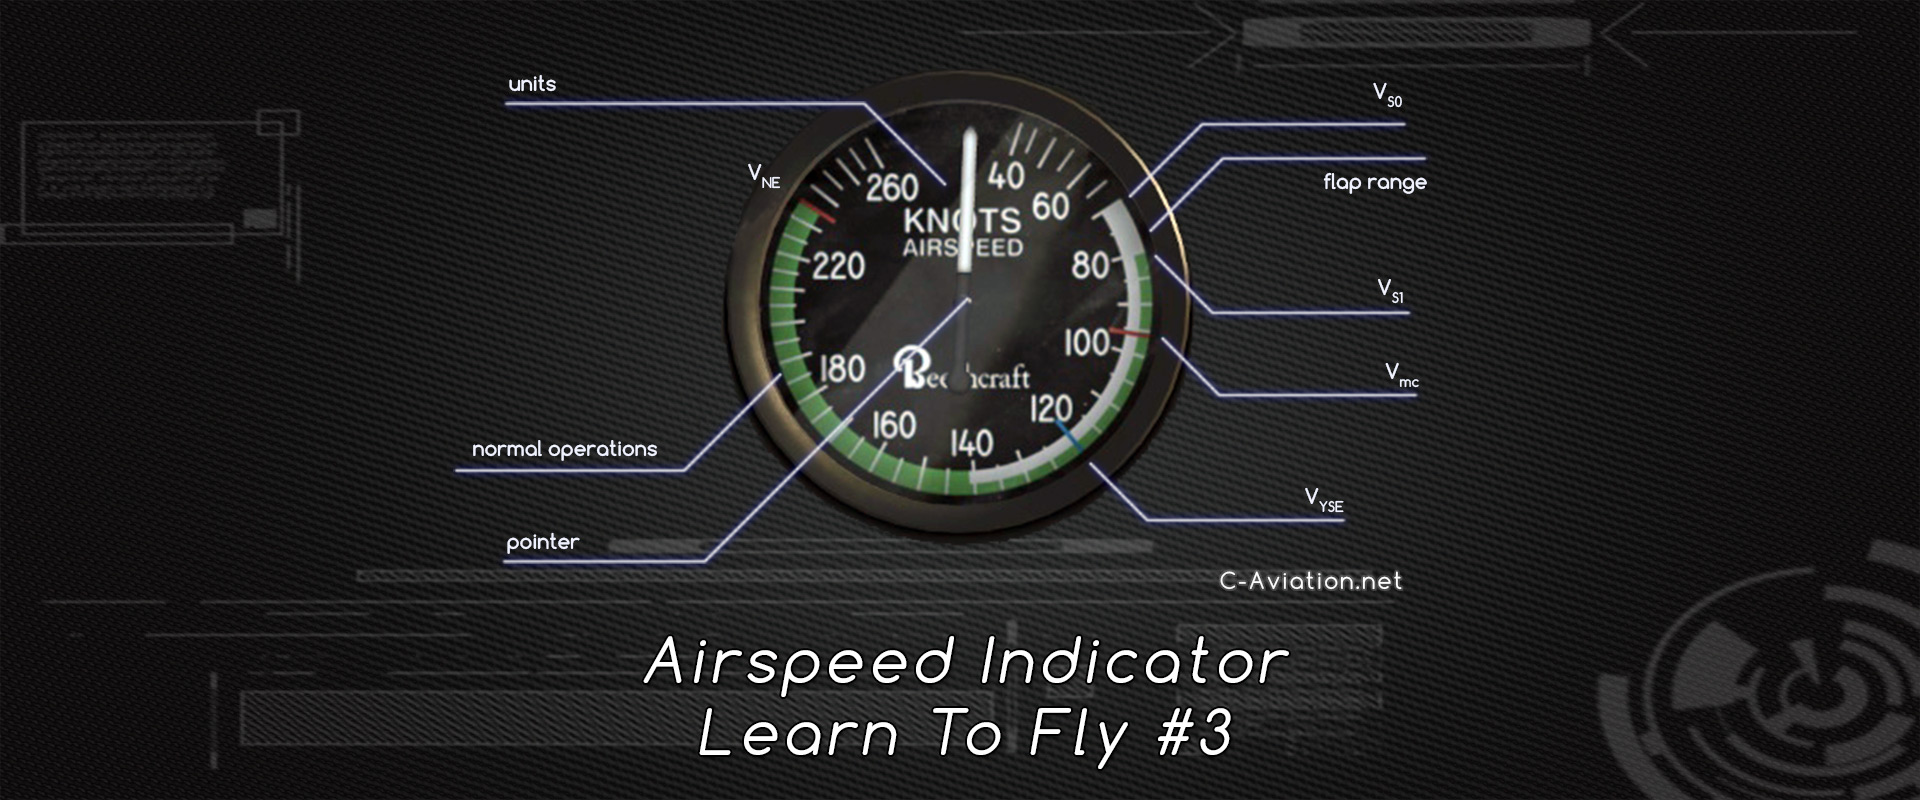 Airspeed Indicator - Learn To Fly (#3)